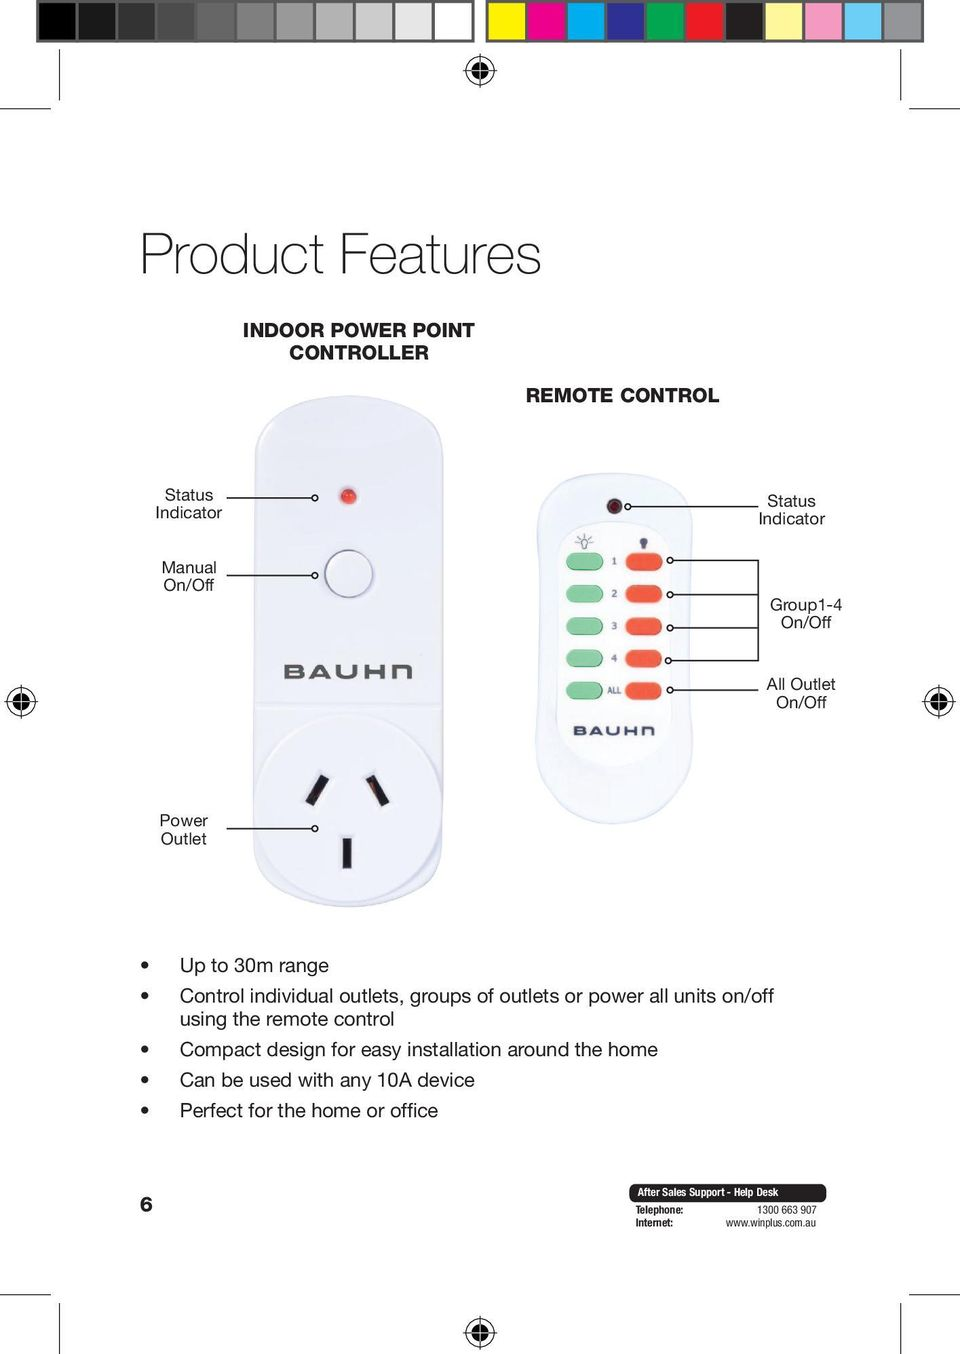 individual outlets, groups of outlets or power all units on/off using the remote control Compact